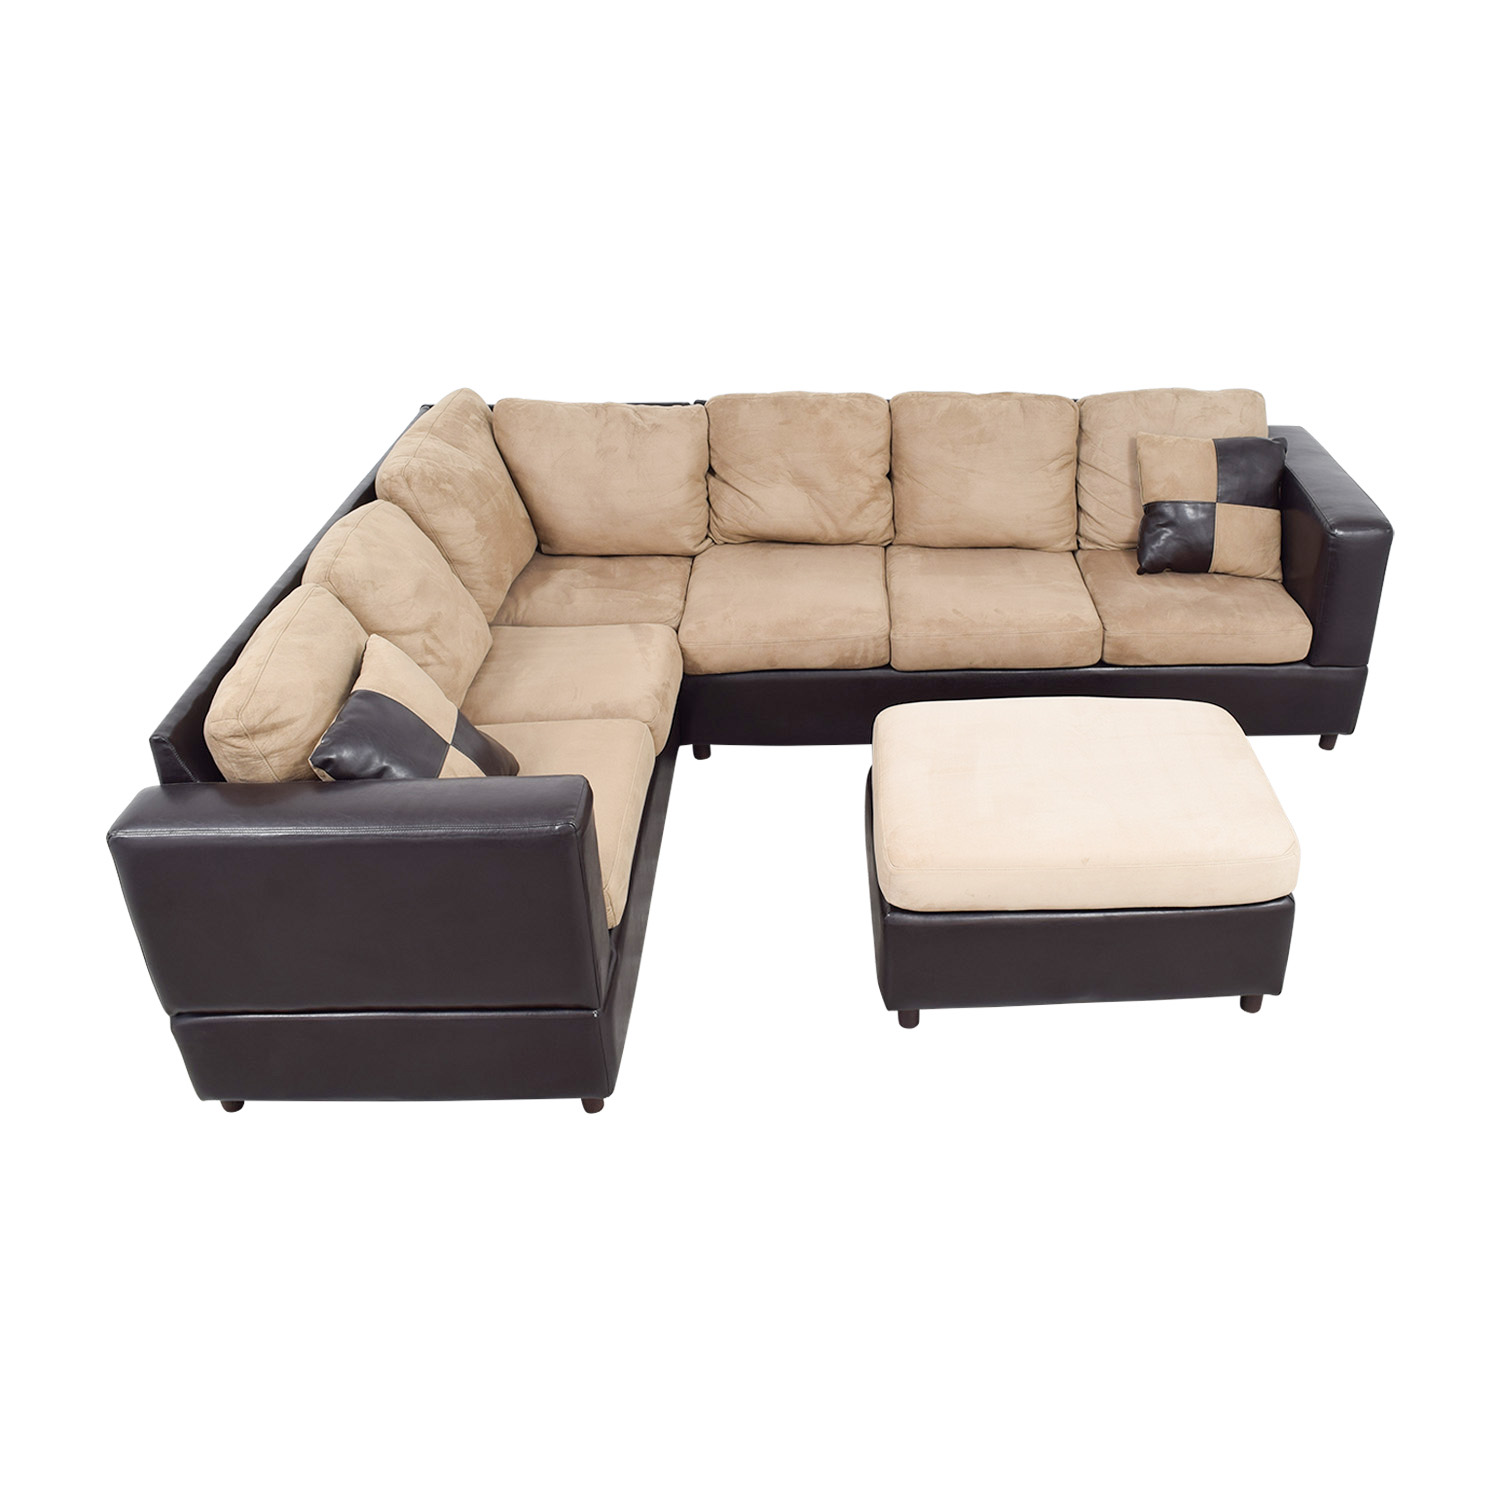 Jennifer Furniture Jennifer Furniture Brown Leather and Tan Micro-Suede L Sectional with Ottoman discount